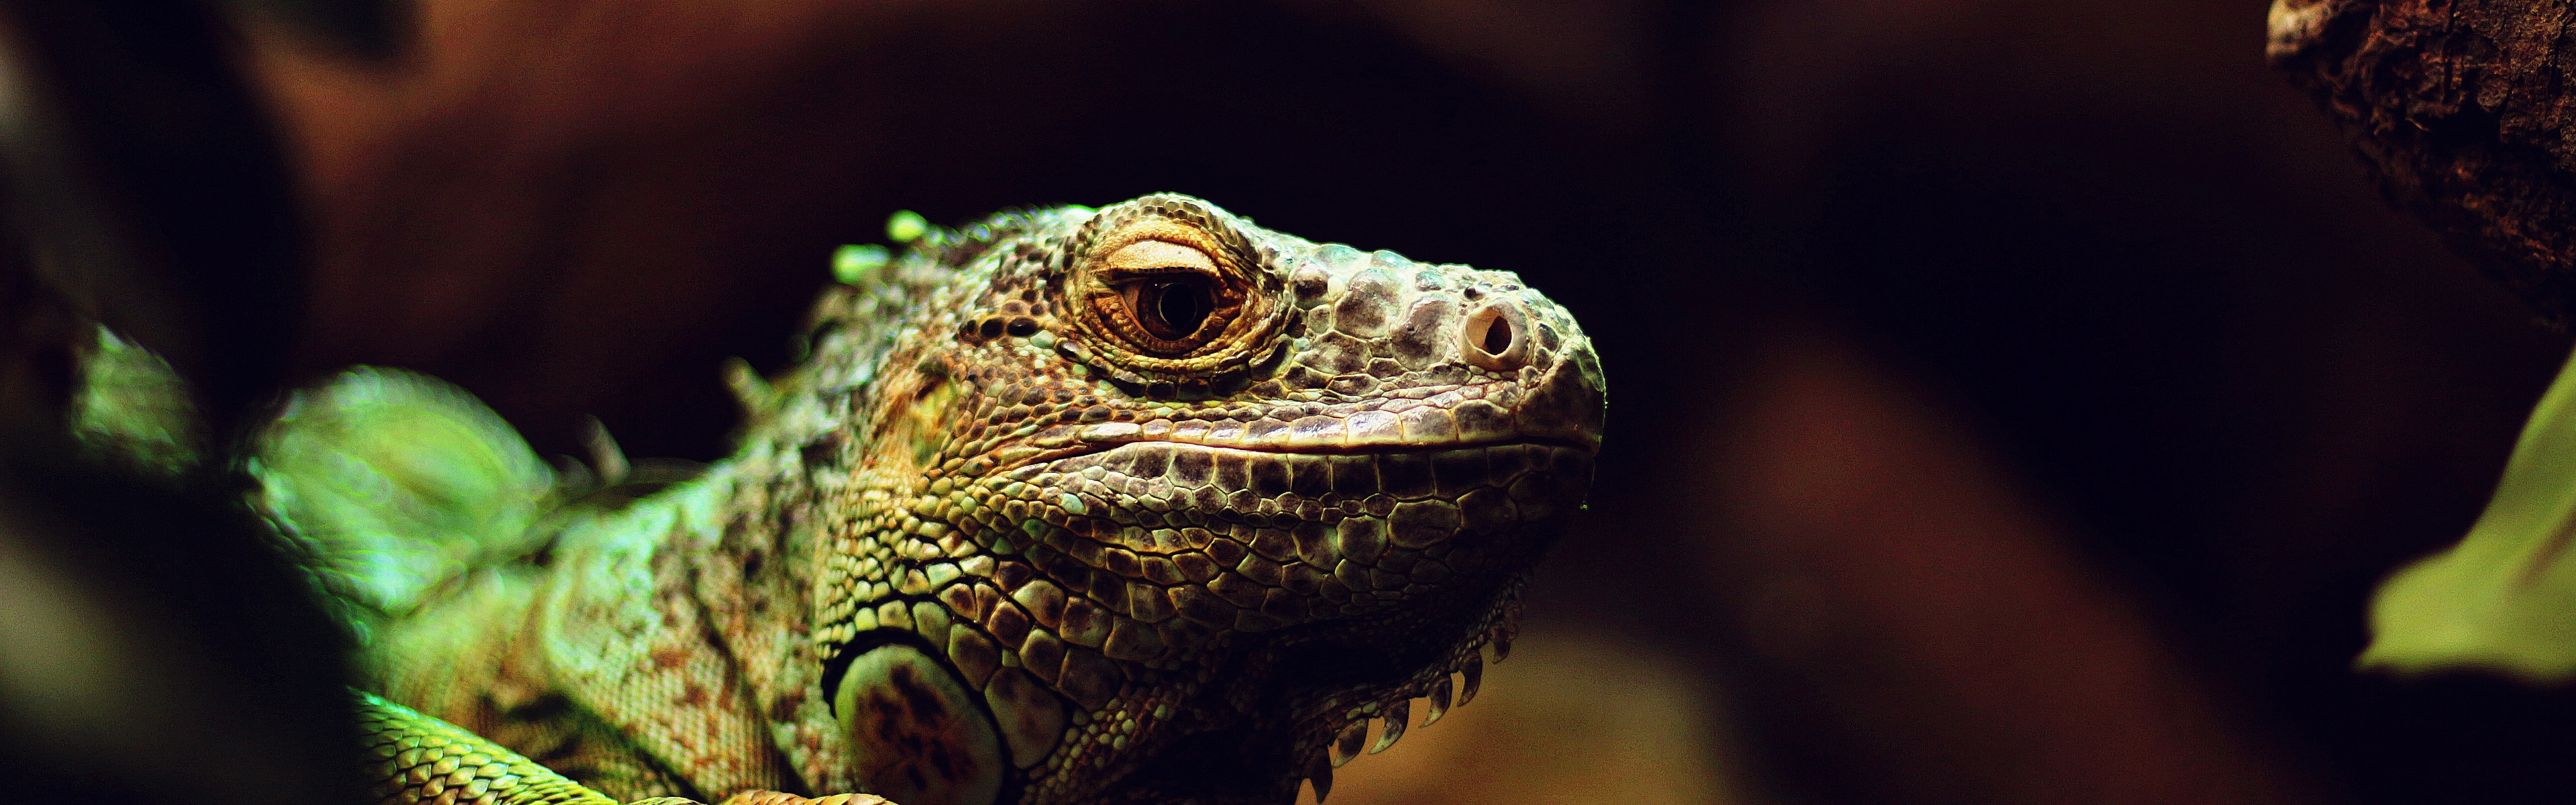 Lizard Reptile Macro Photography Wallpaper 3840x1200